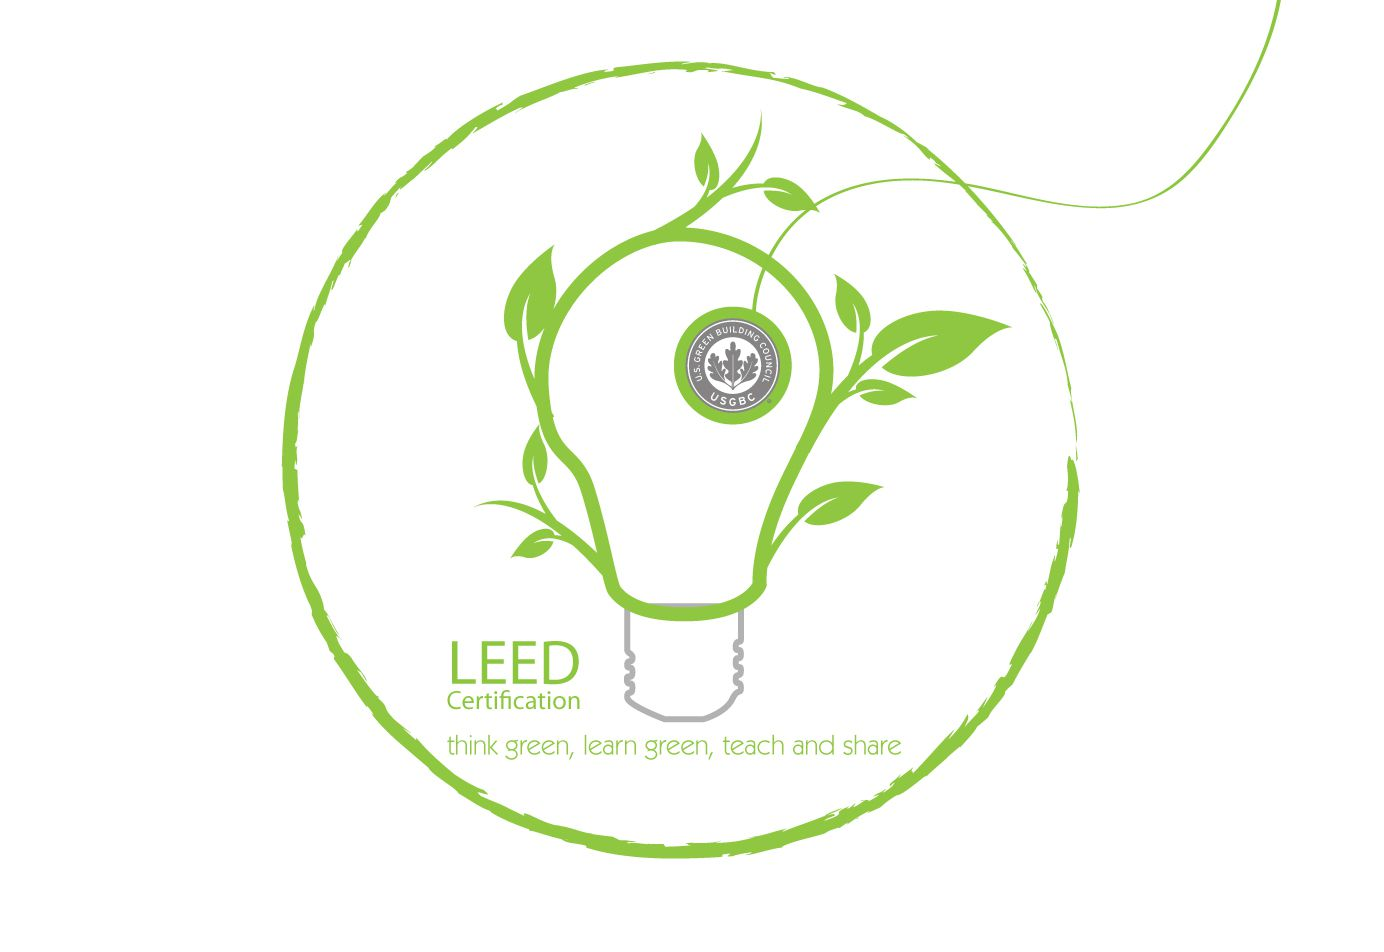 What Are The Benefits Of Leed Certification